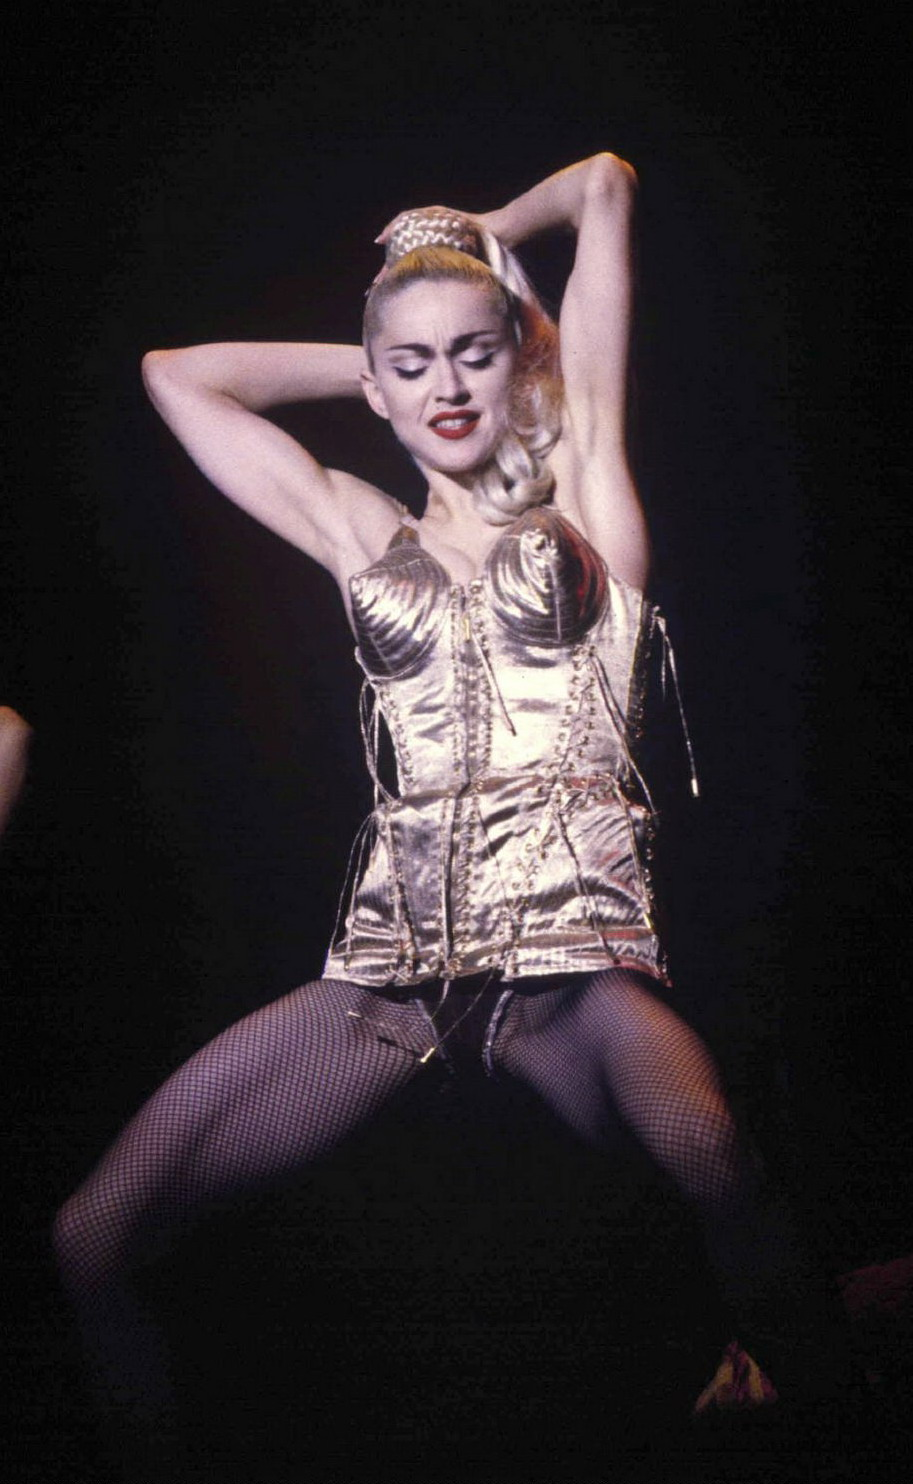 Macyu0027s to Exhibit Iconic Outfits  sc 1 st  The Madonna Collection & The Madonna Collection: Macyu0027s to Exhibit Iconic Outfits